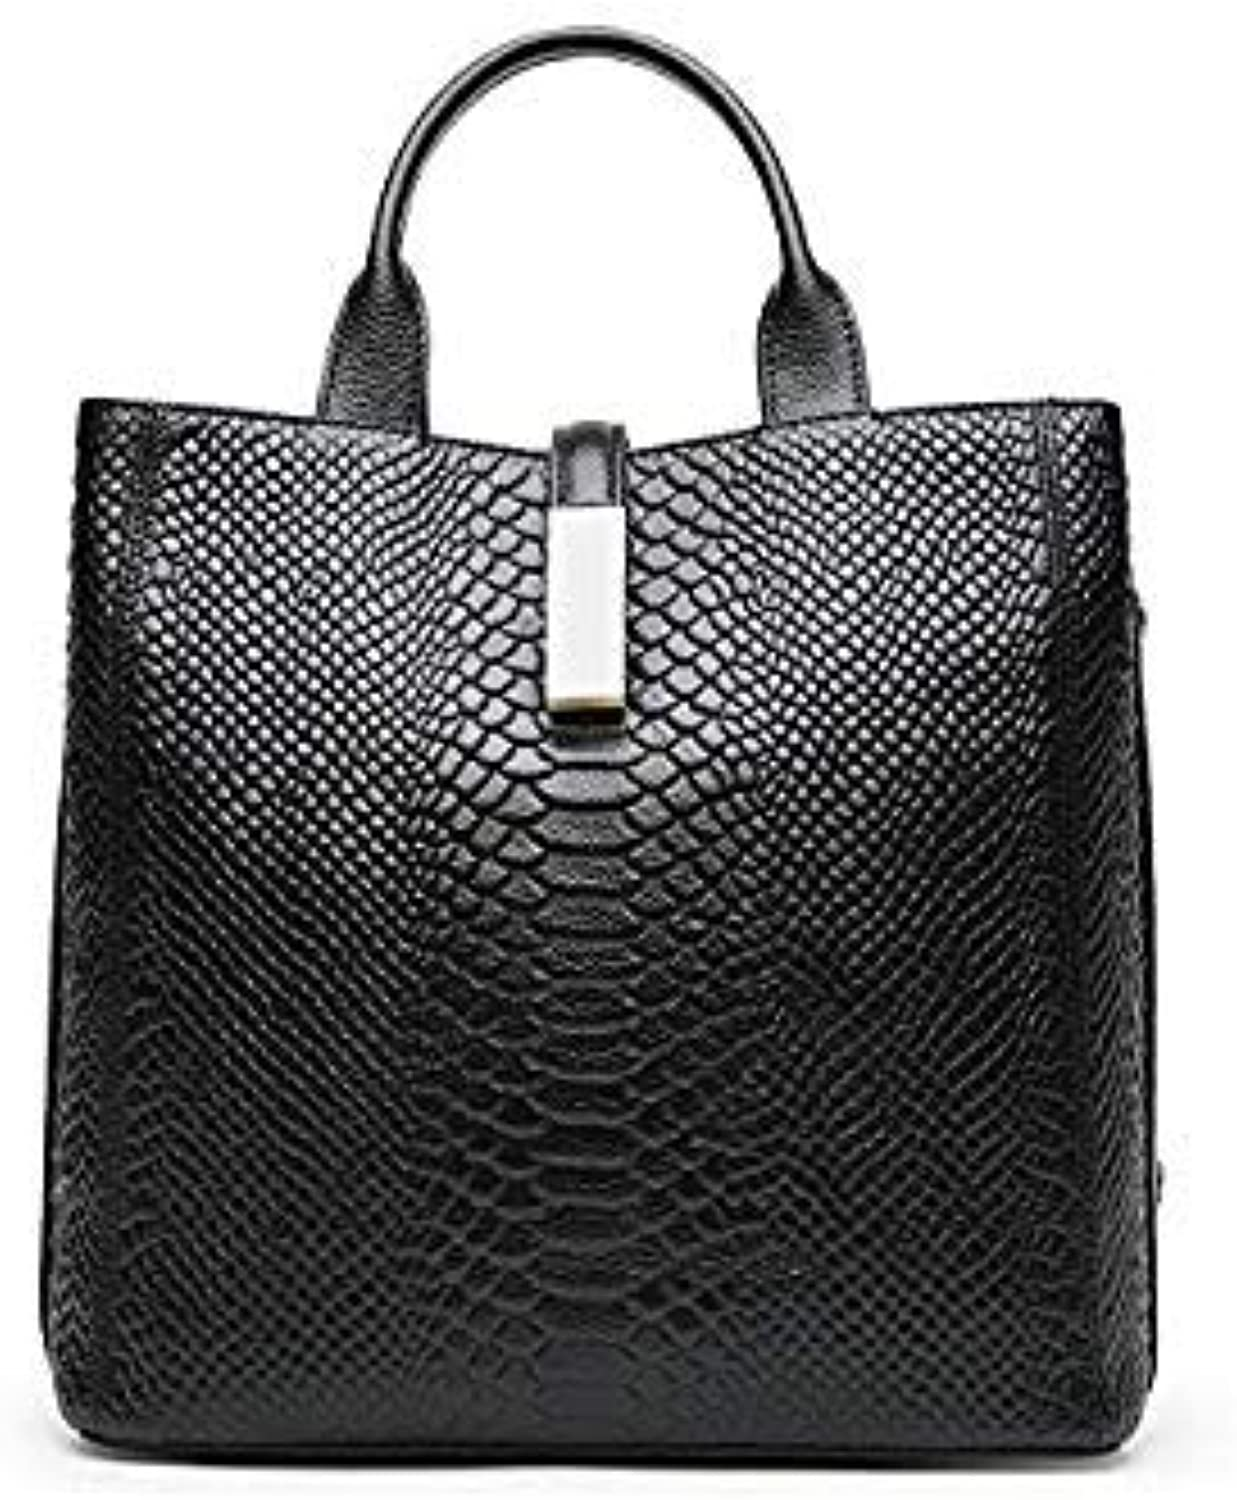 Bloomerang QIAOBAO Women Bags Fashion Alligator Women Handbags High Quality Real Leather Women Shoulder Bags Luxury Casual Ladies Tote color Black 30x14x27CM